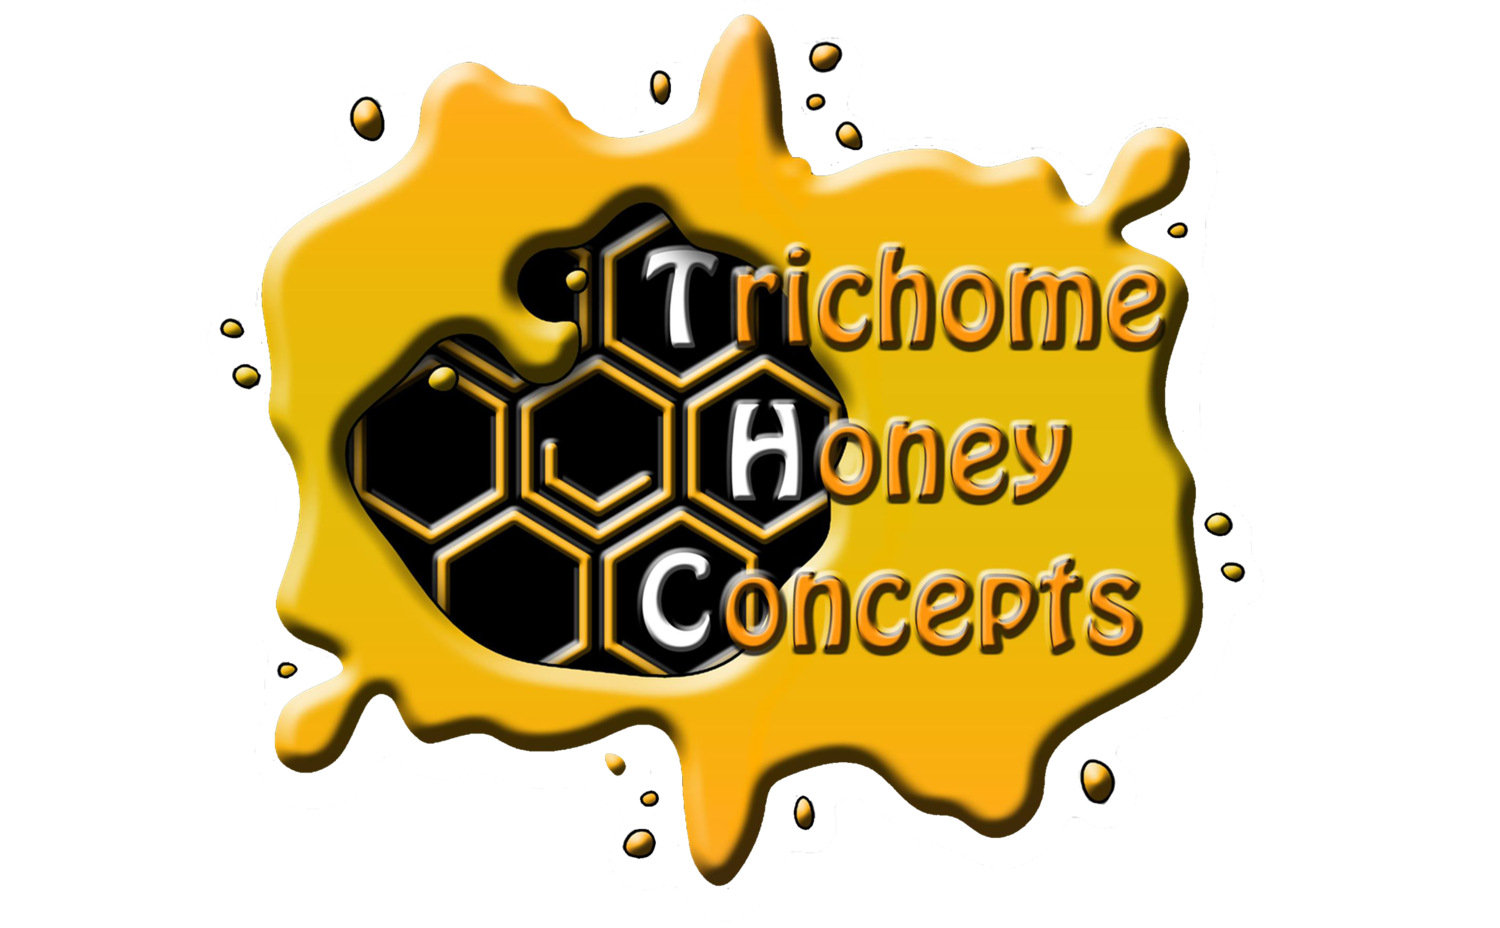 Trichome Honey Concepts